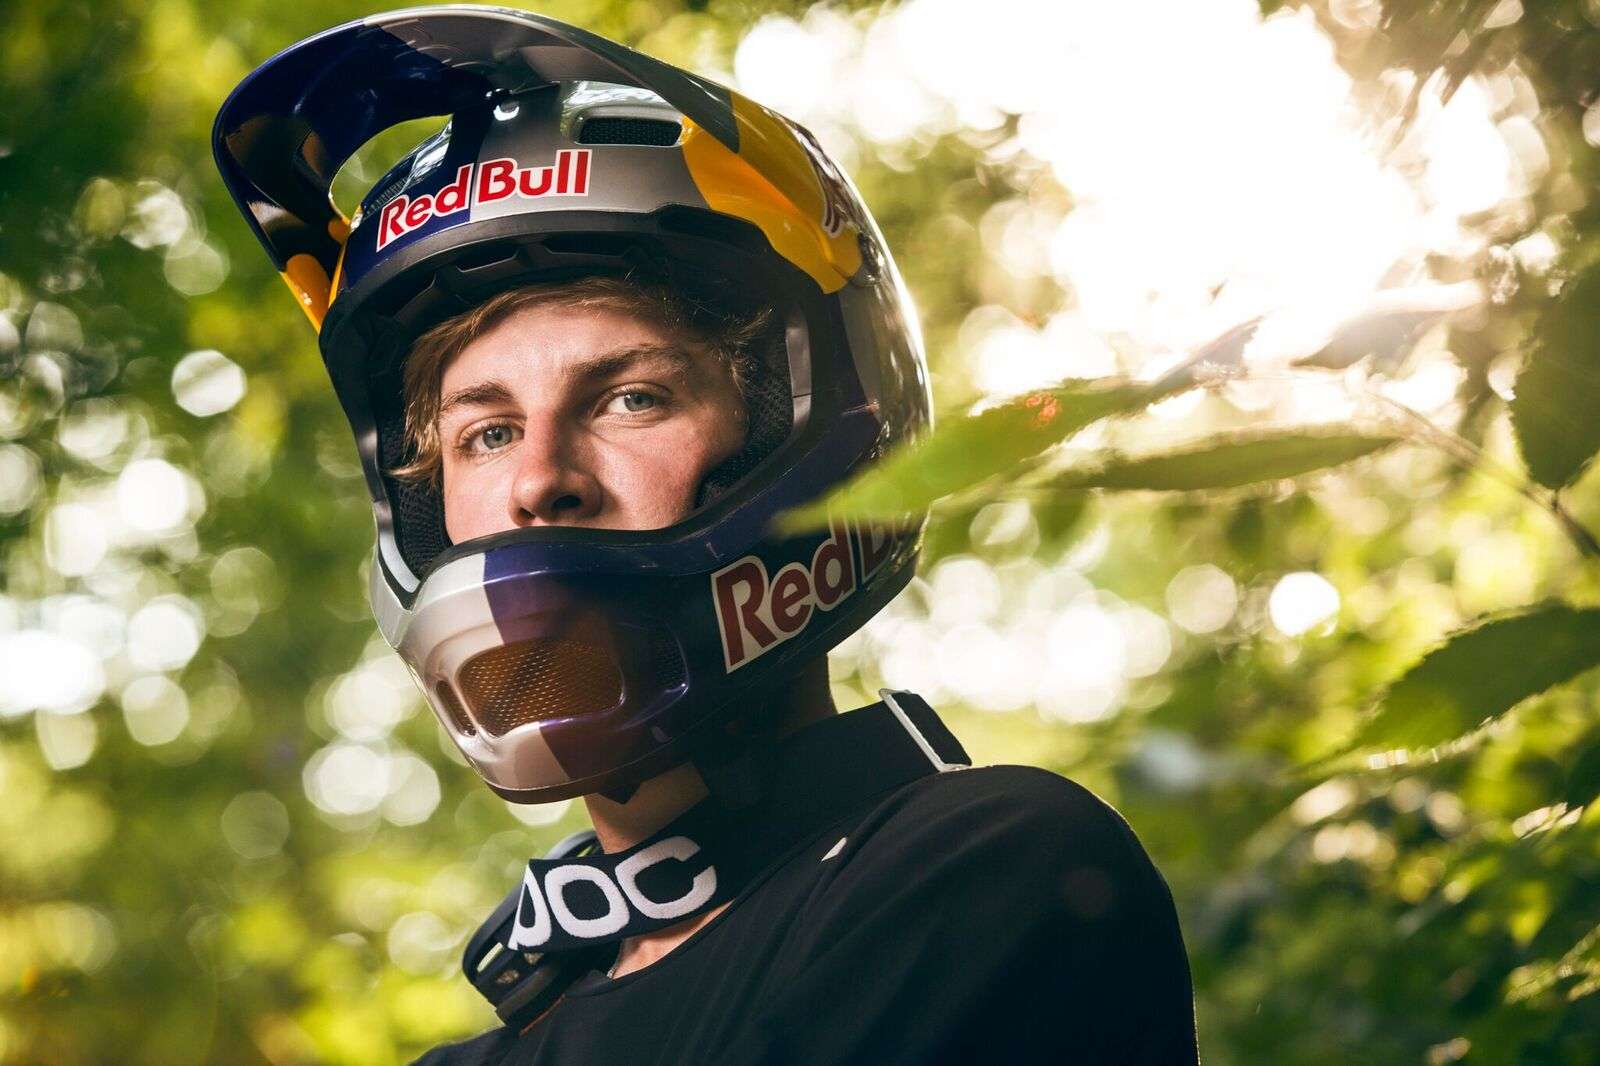 Catching Up With Fabio Wibmer Ride It Out